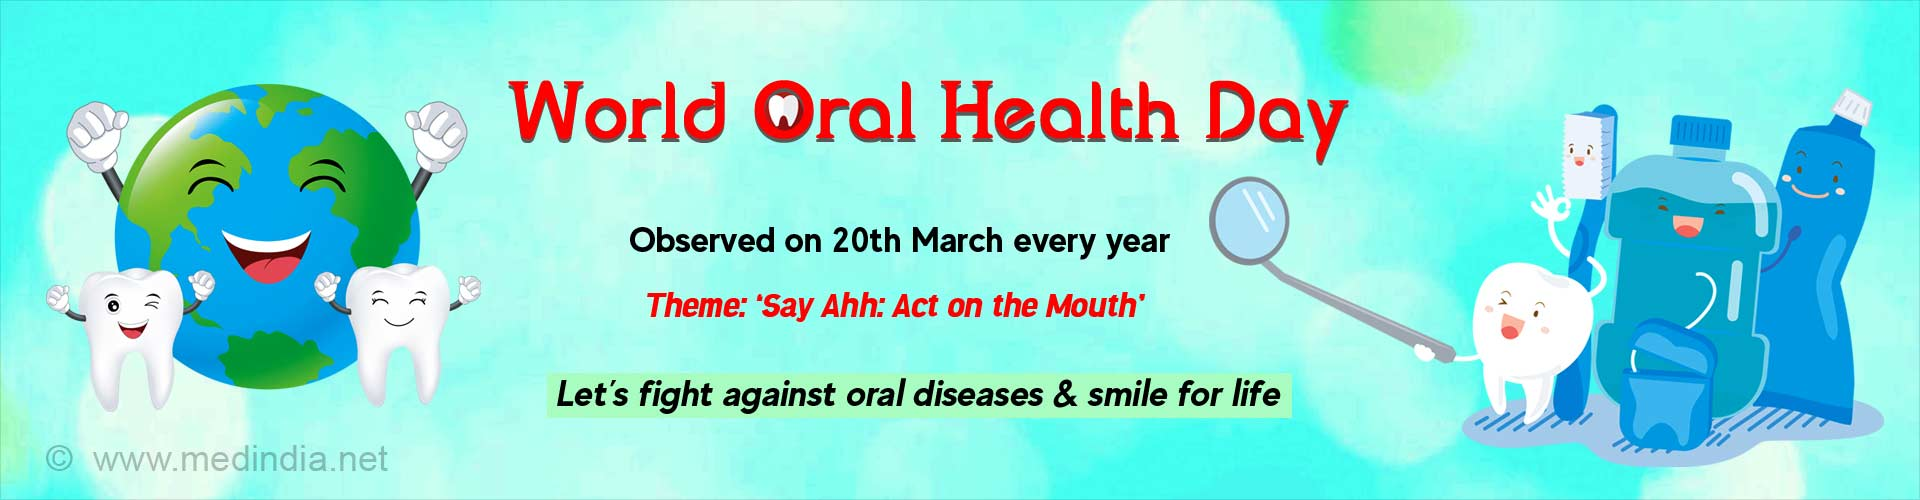 World Oral Health Day - ''Say Ahh: Act on the Mouth''